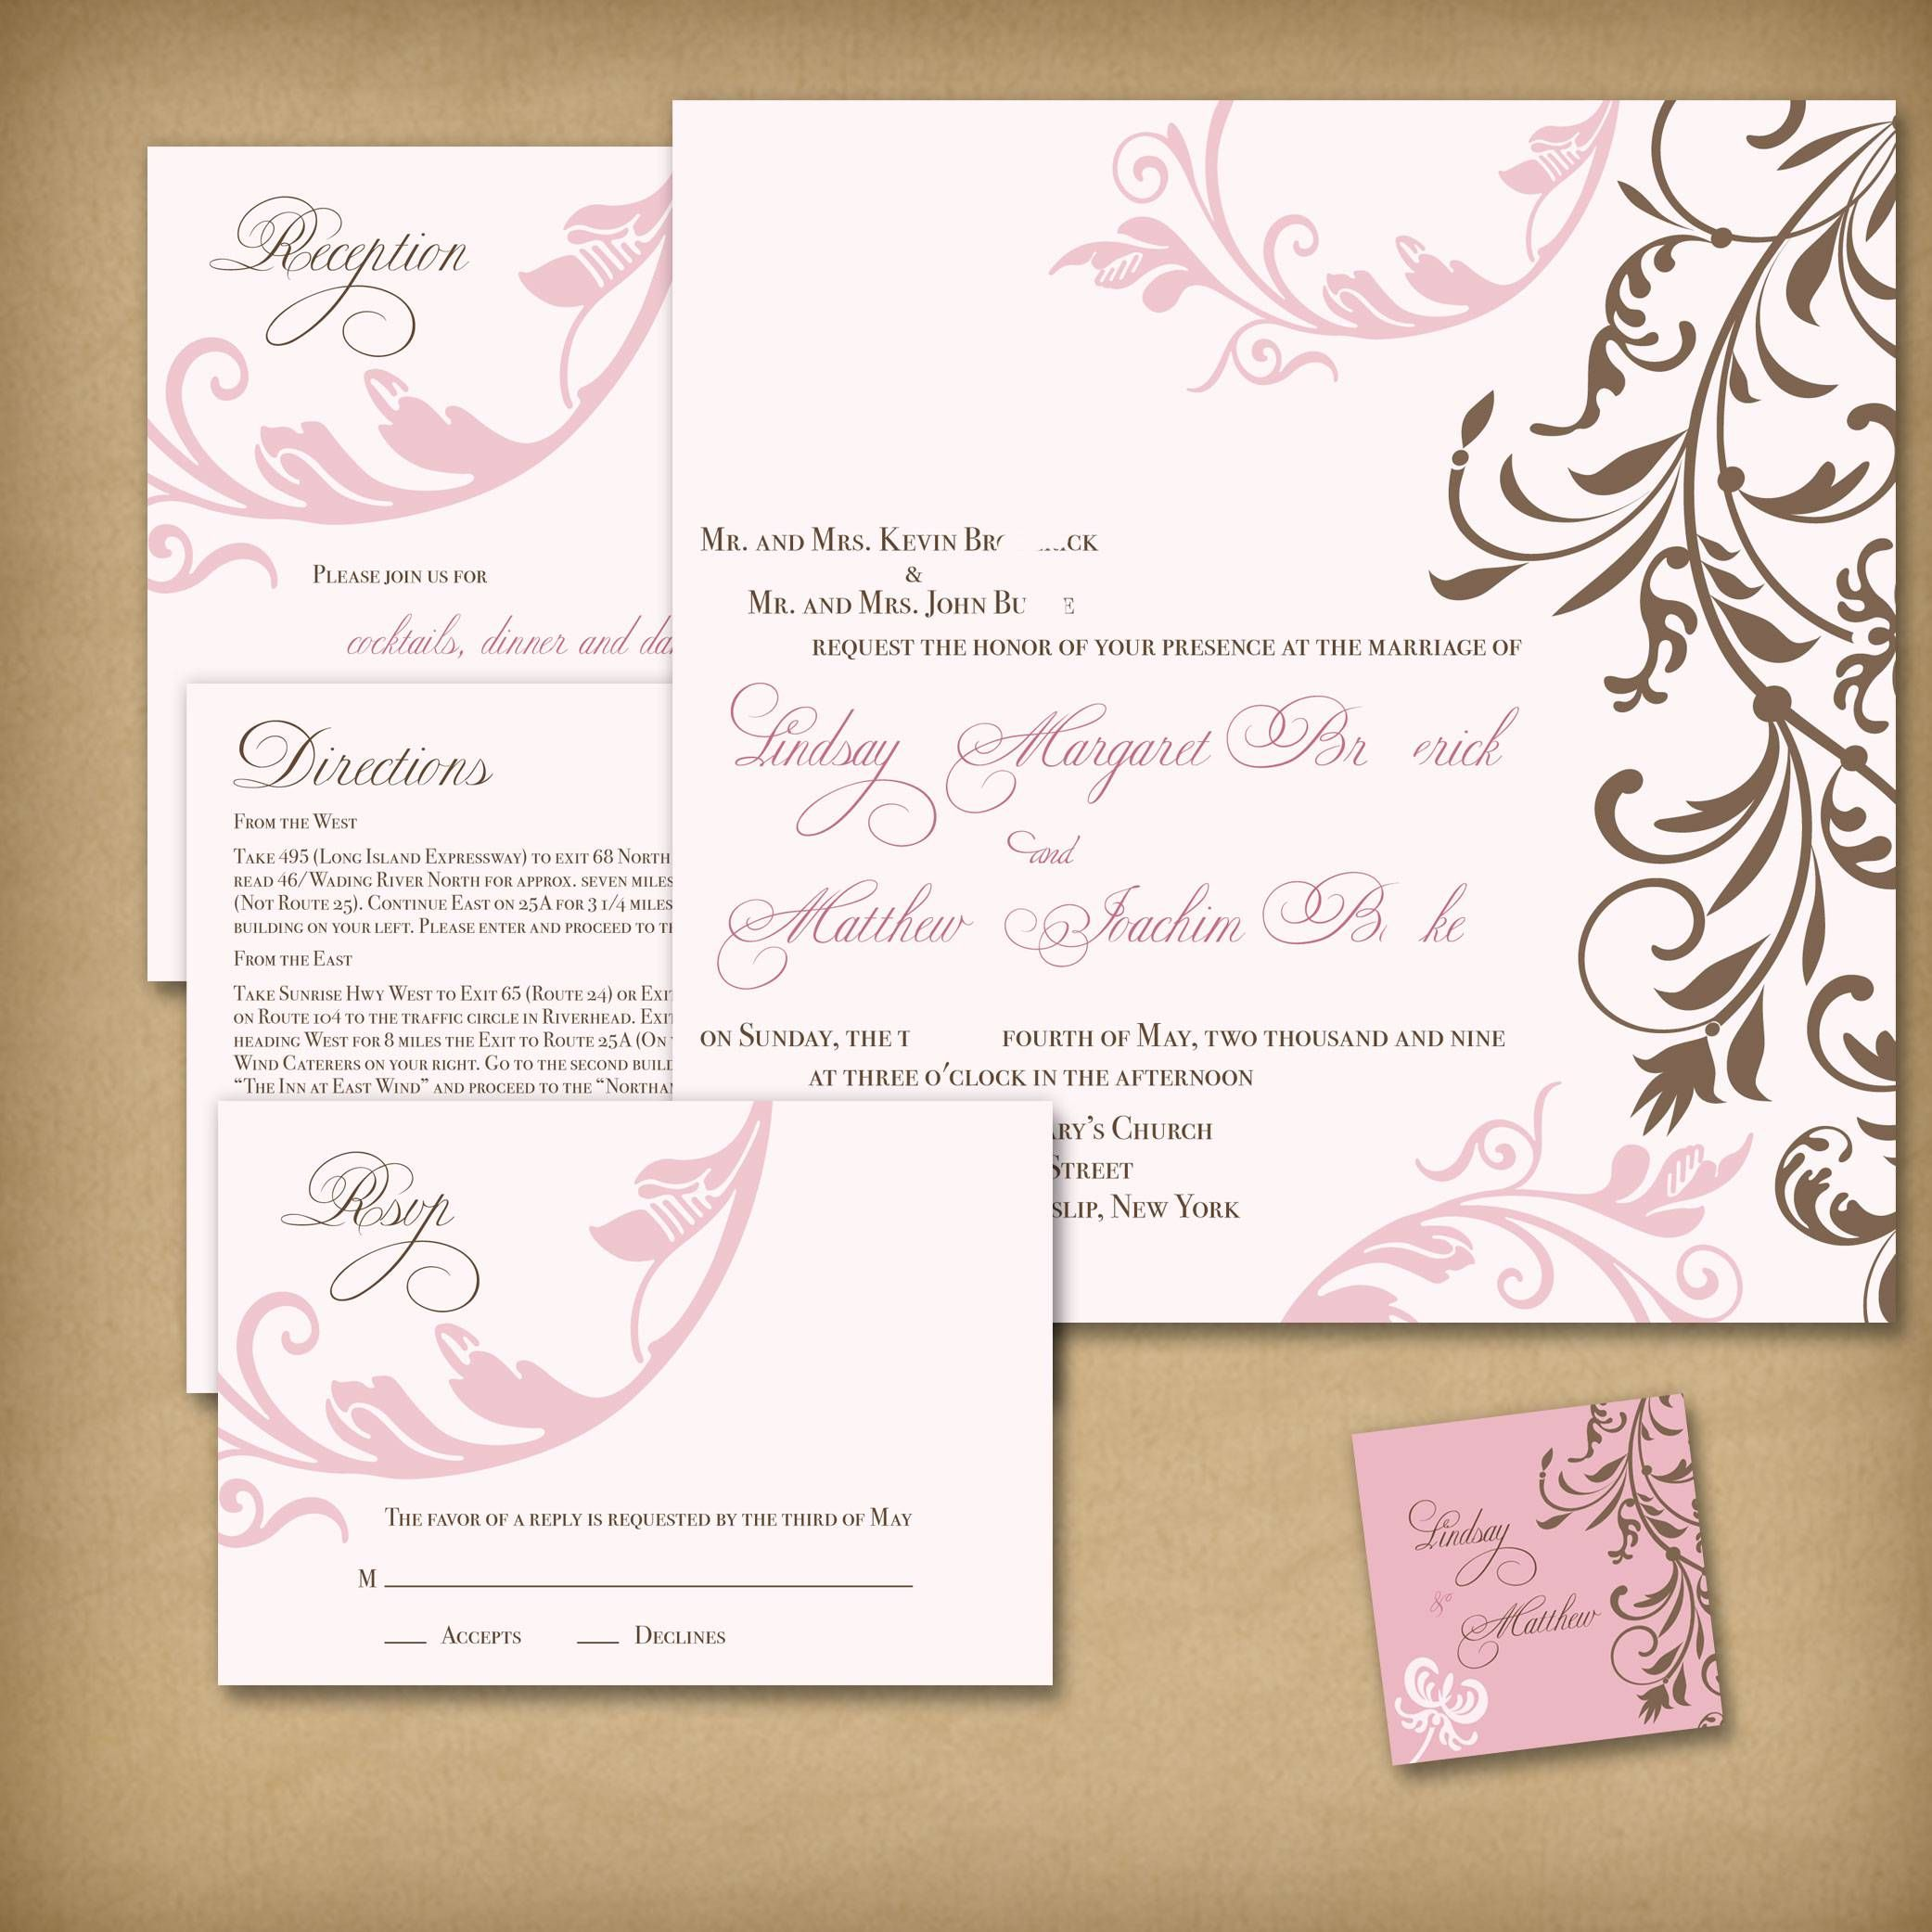 Invitation Template Word New Wedding Invitation Templates  Wedding Invitation Templates Word .